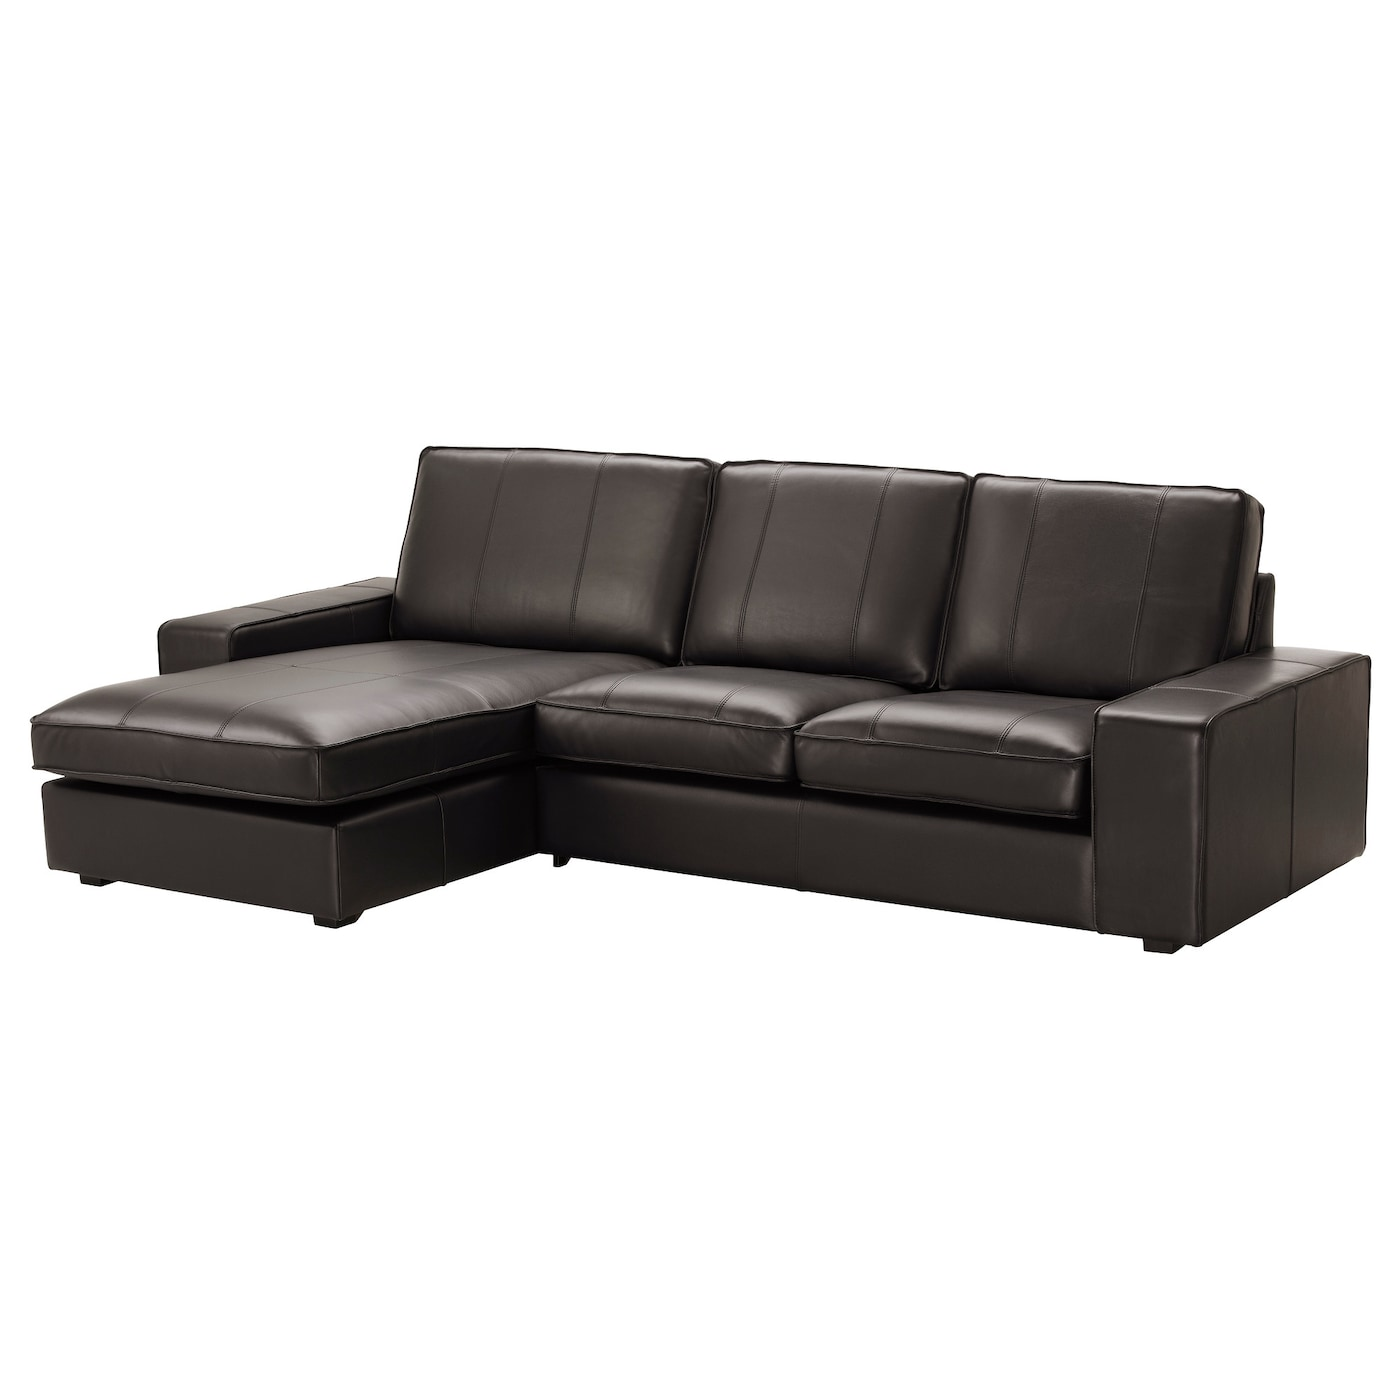 2er sofa ikea  Small Sofa & 2 Seater Sofa | IKEA